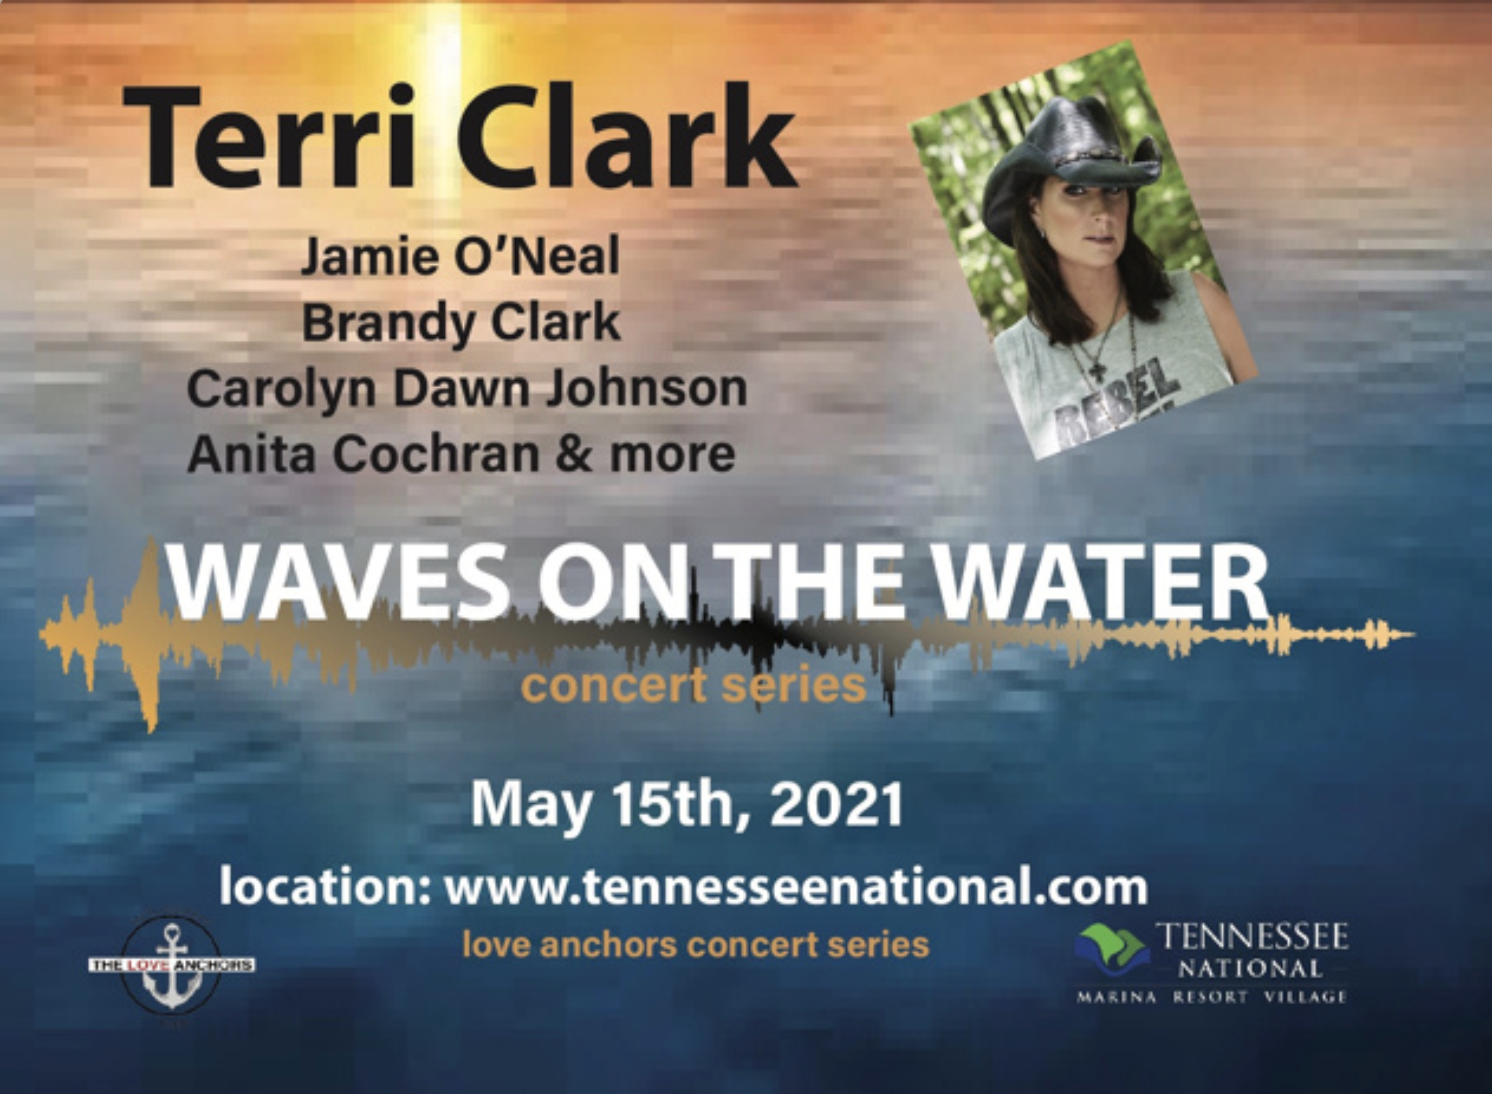 Register to Win Tickets to Waves on the Water with Terri Clark